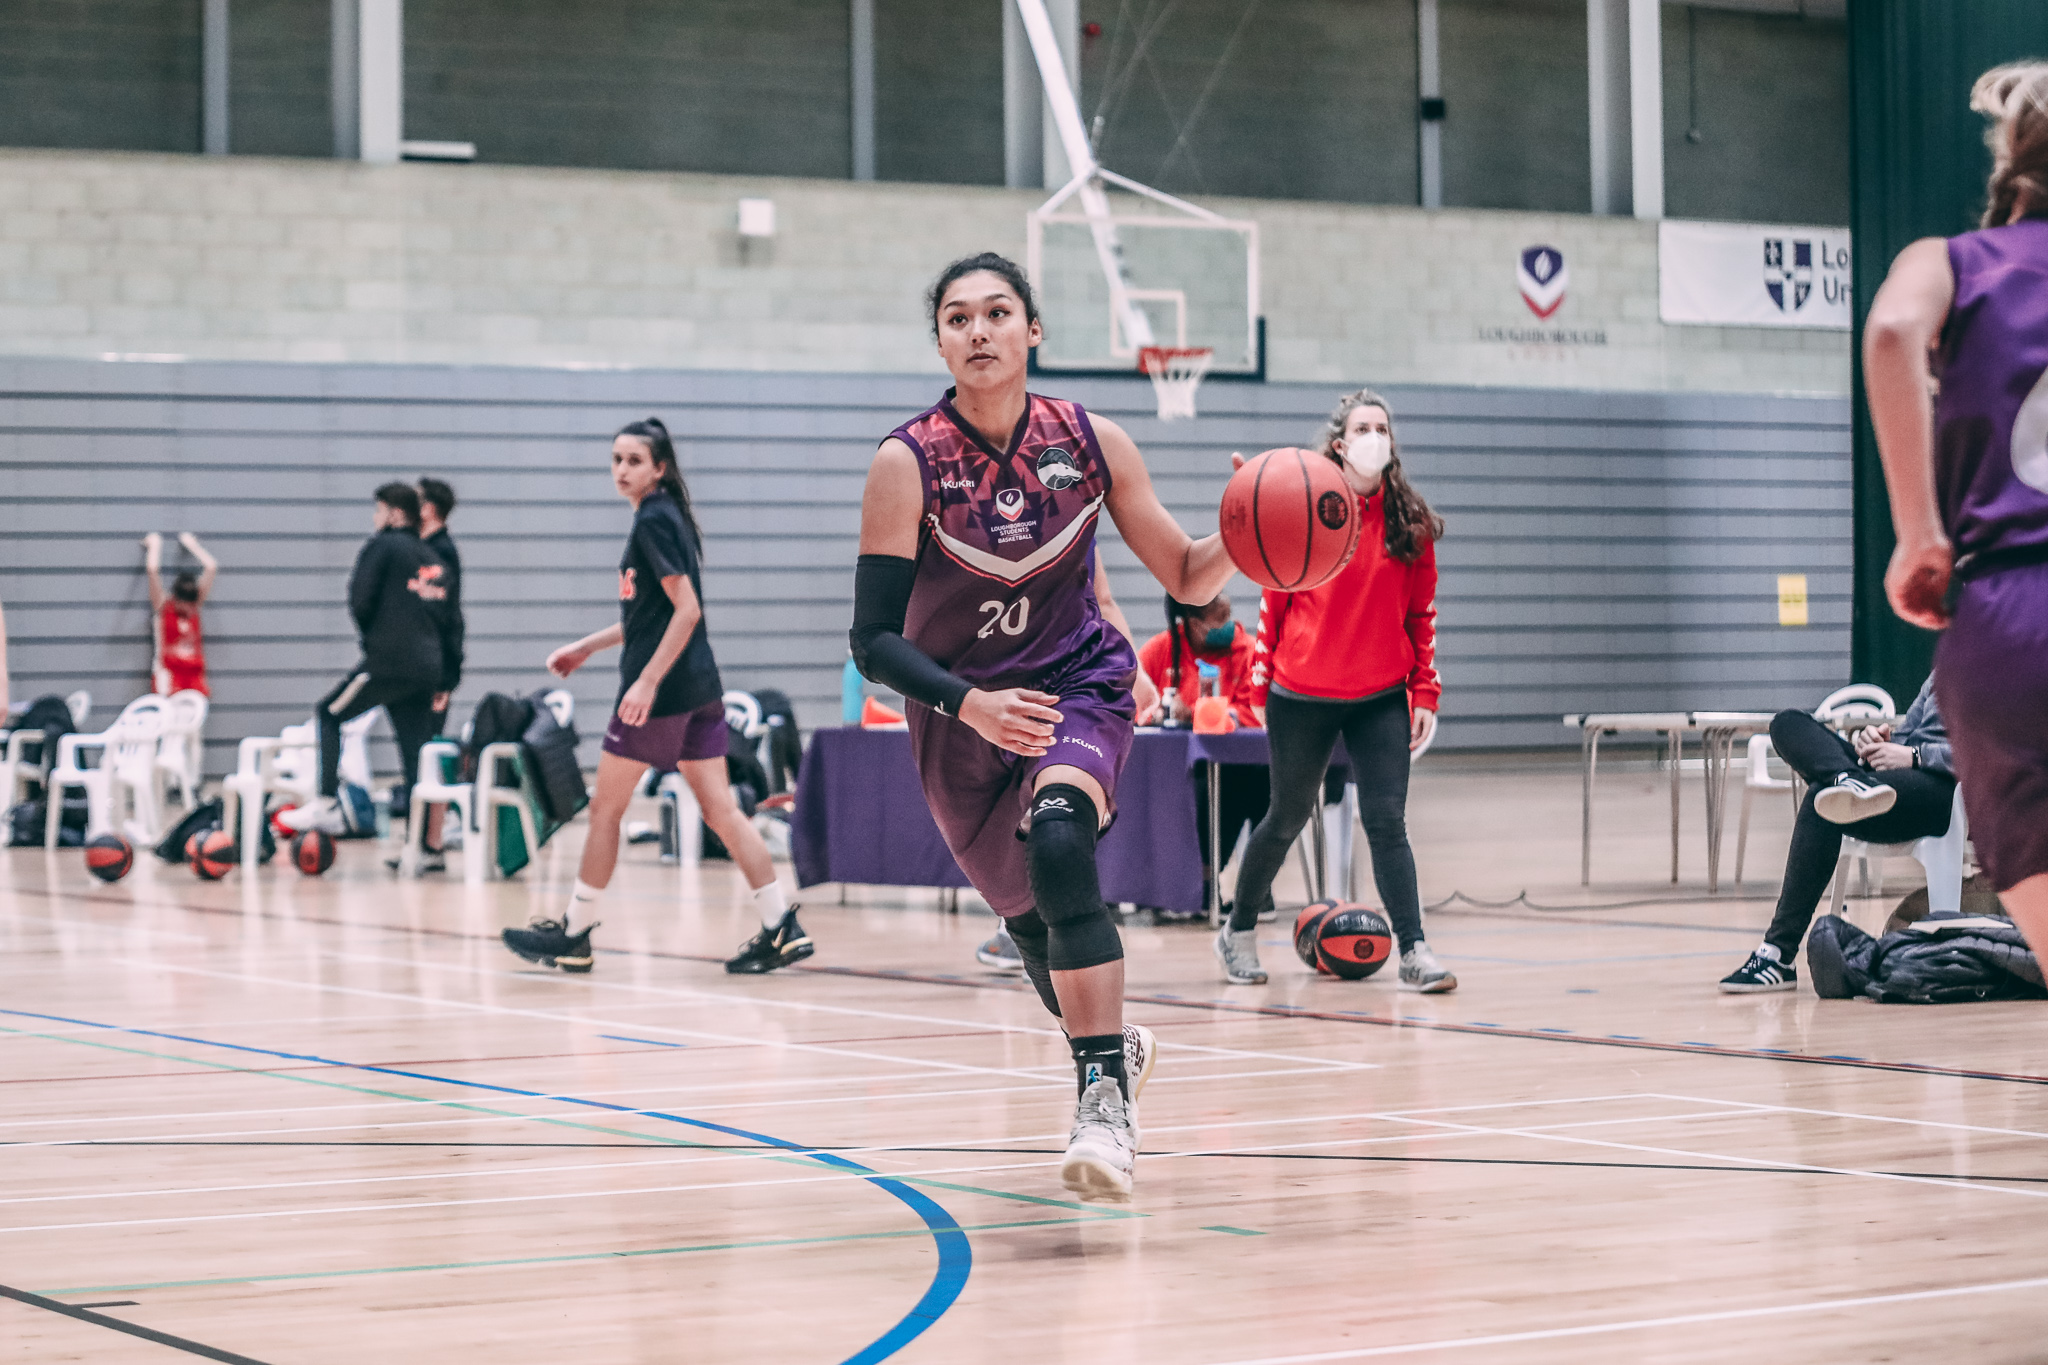 Riders Women take victory over Reading to improve to 1-1 in NBL play.